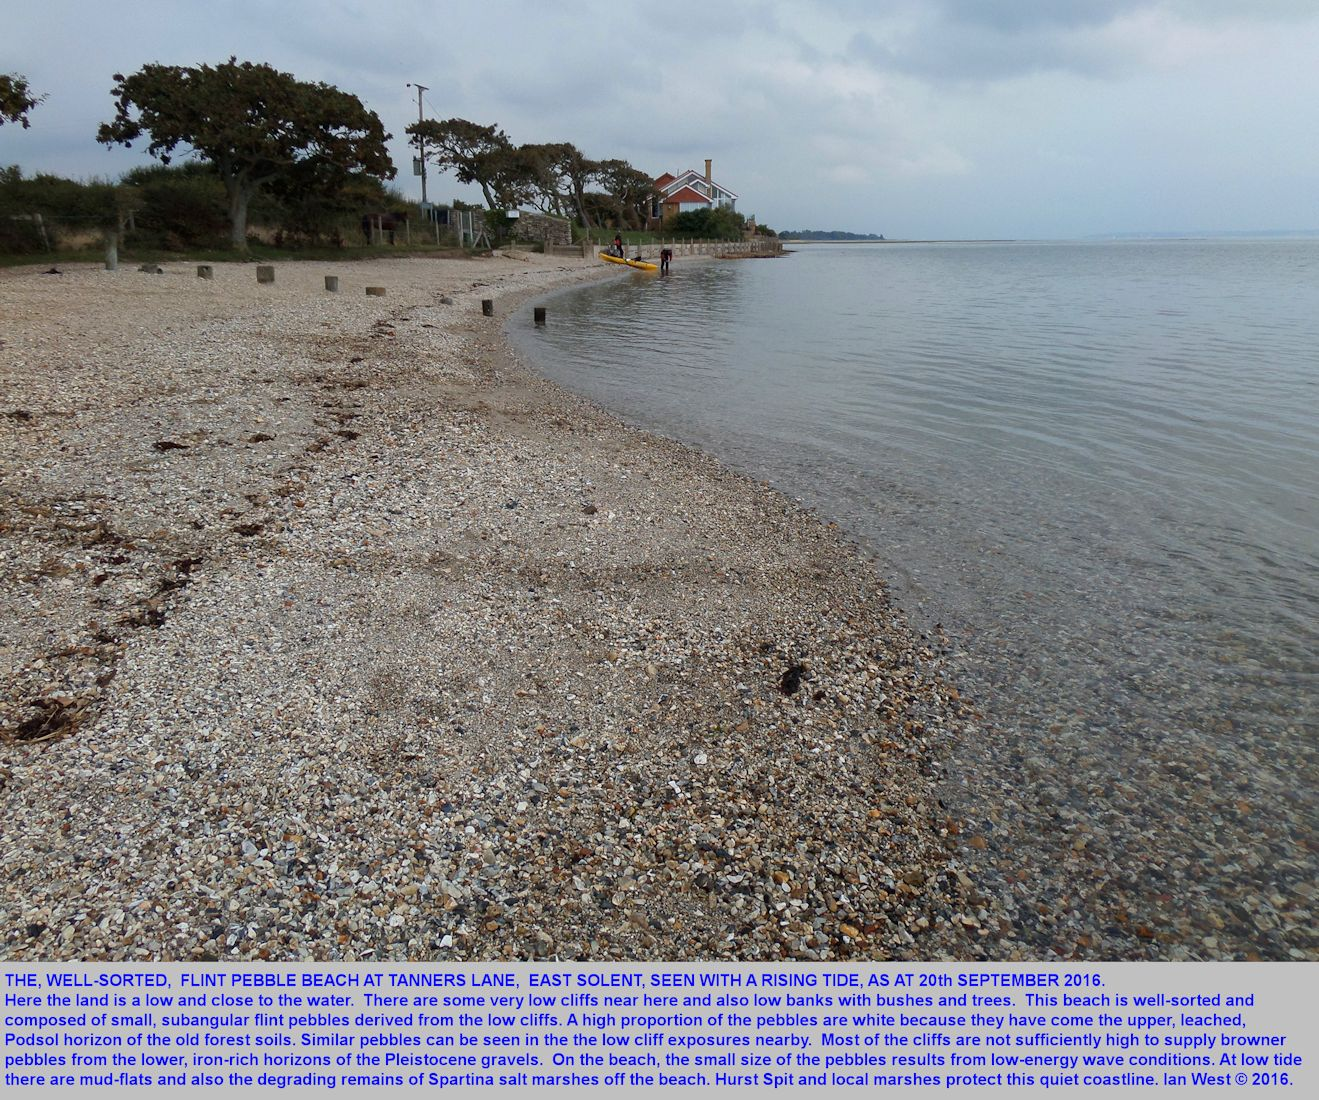 Tanners Lane Beach, with small, largely white, flint pebbles, West Solent Estuary, near Lymington, southern England, 20th September 2016